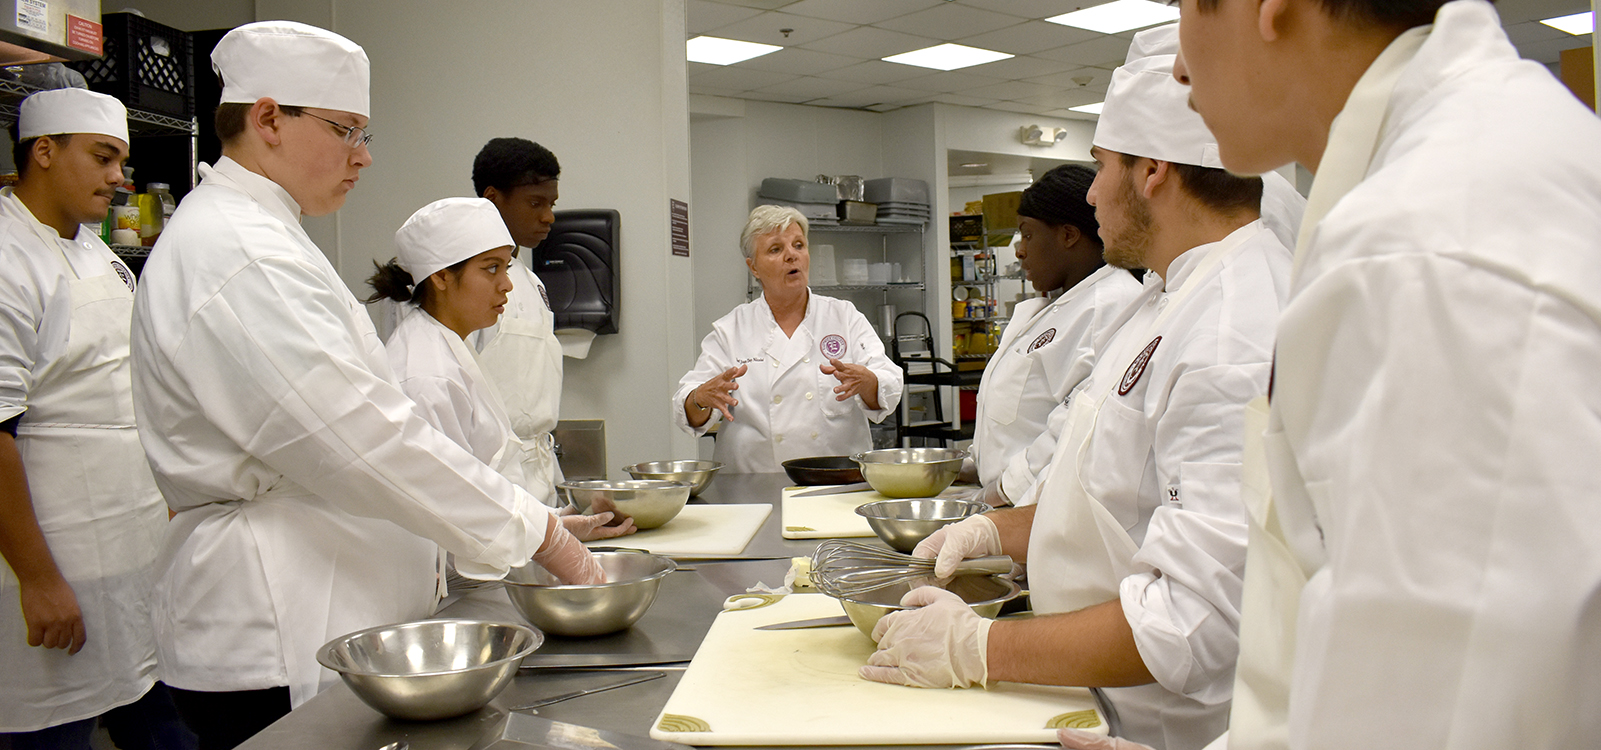 Culinary Arts Associates Degree - Hackensack, NJ